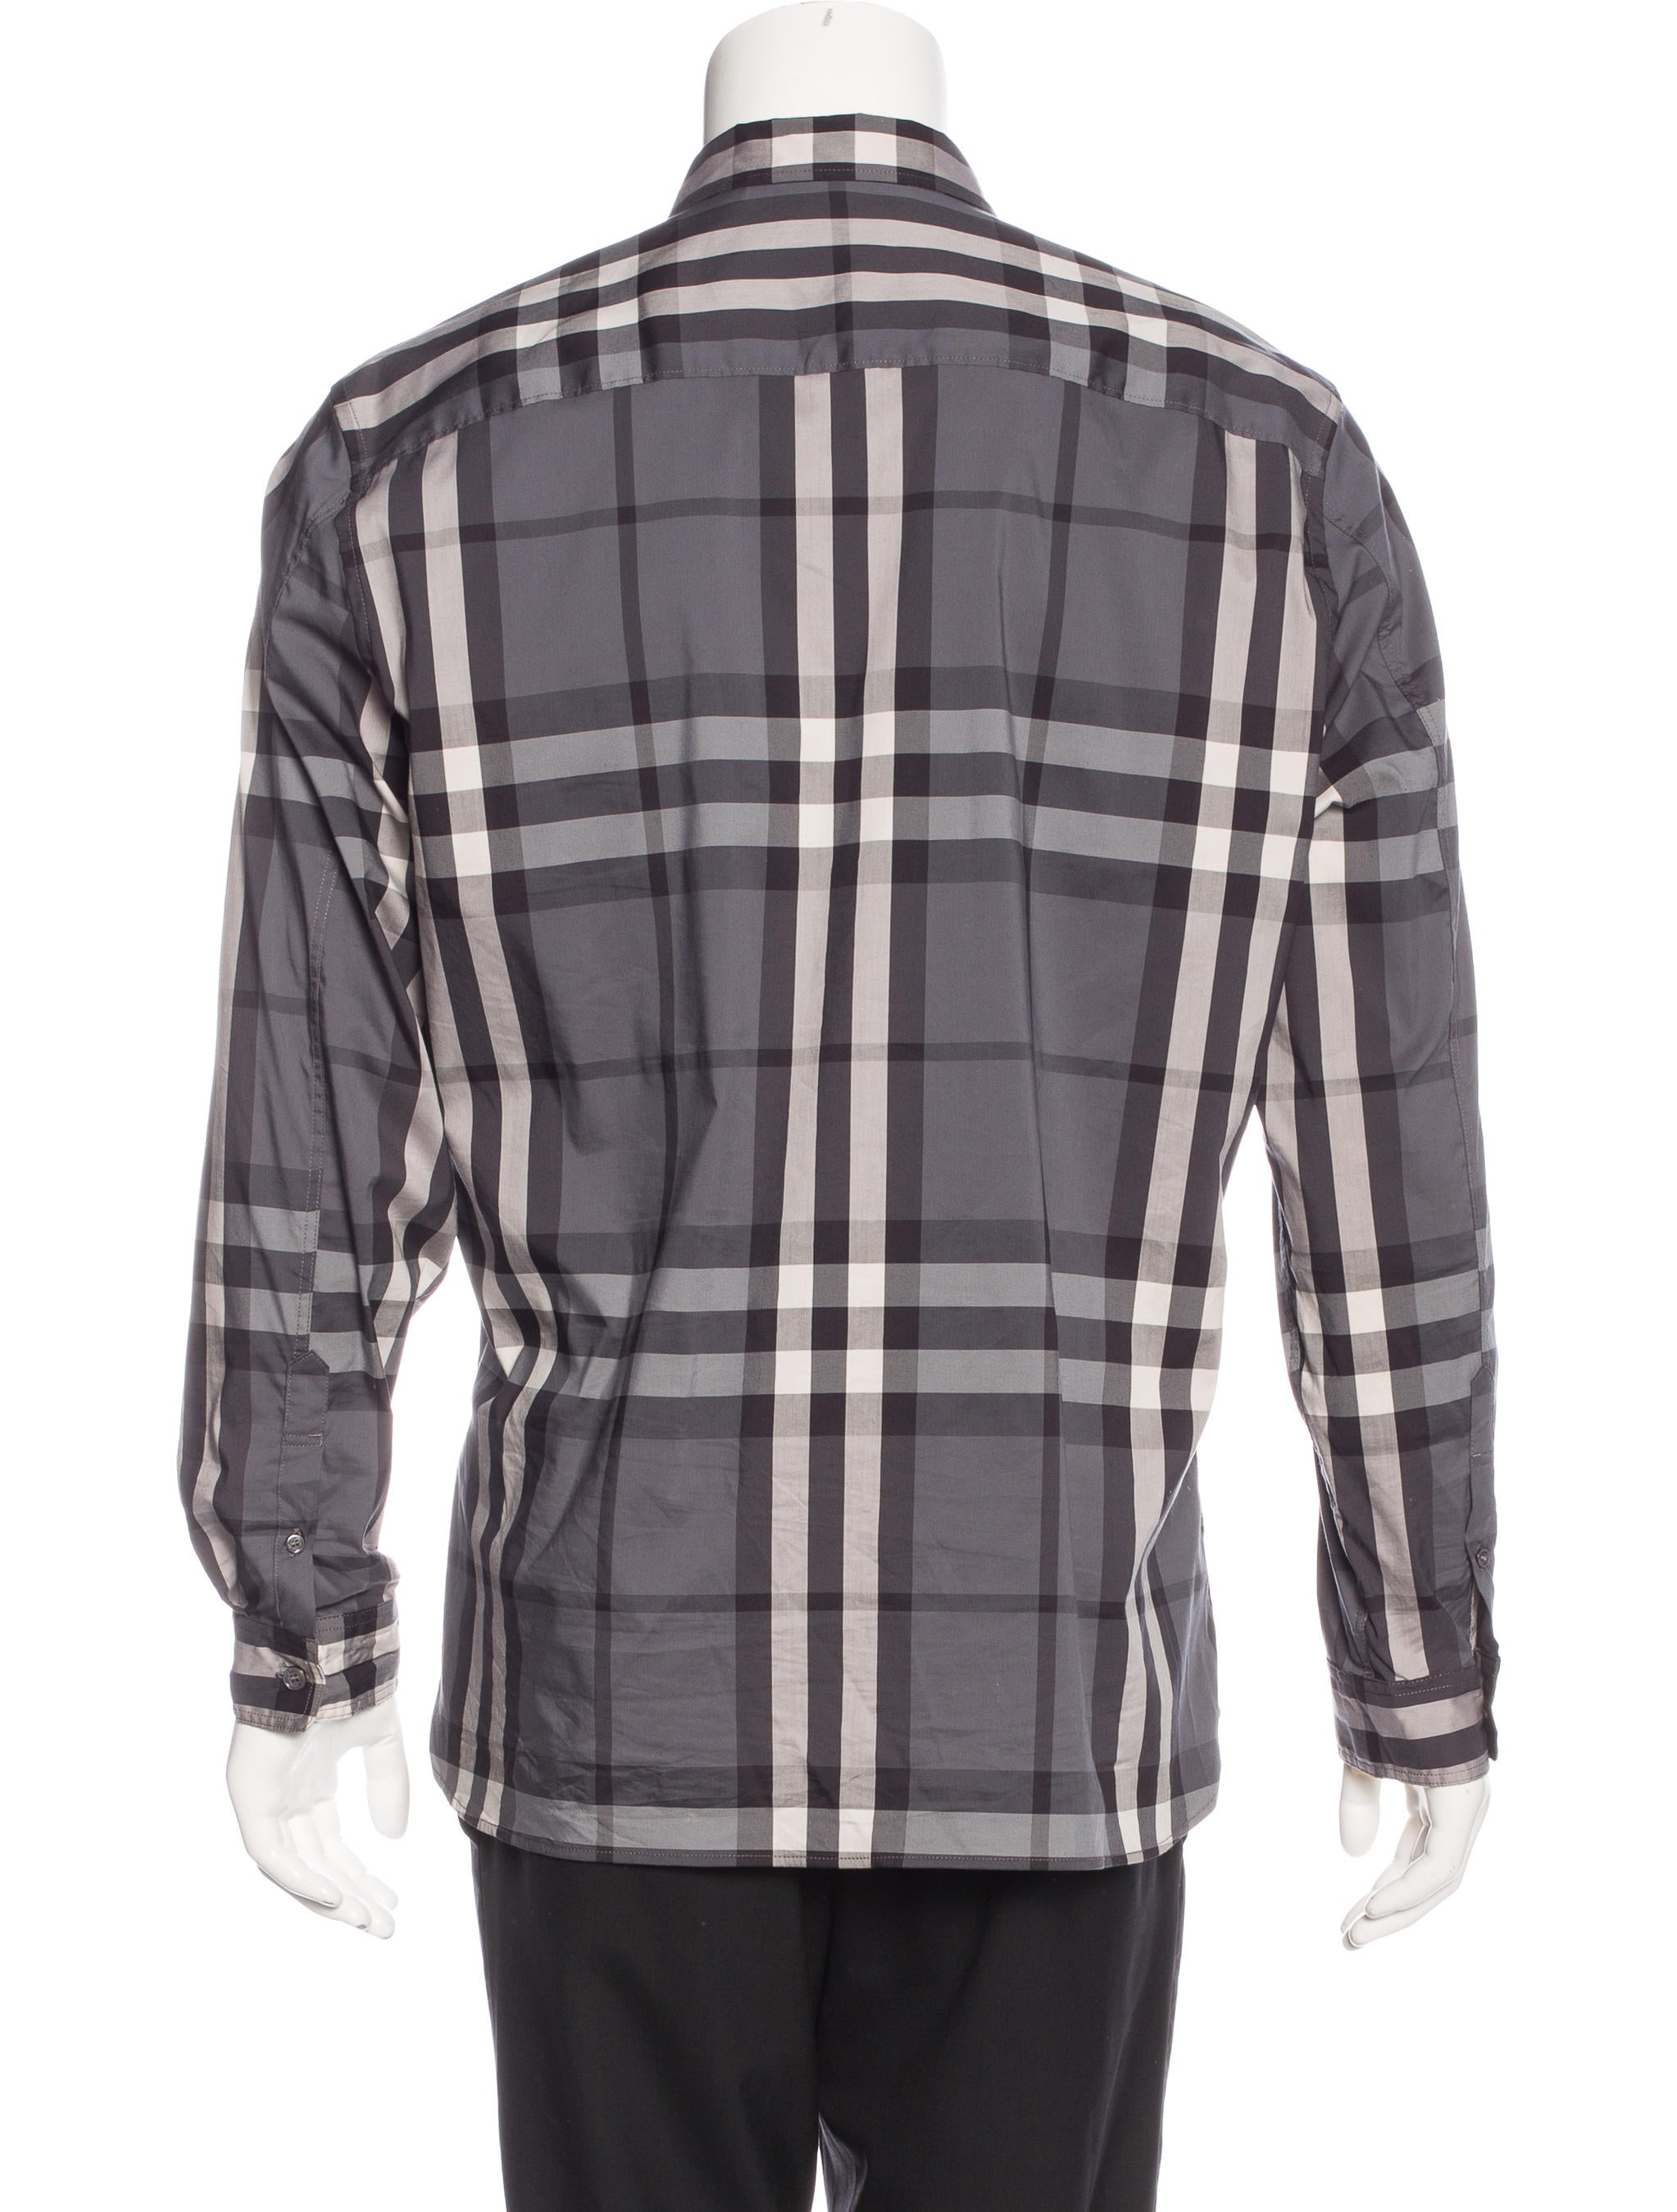 Burberry brit plaid woven shirt clothing bbr27133 for Burberry brit checked shirt